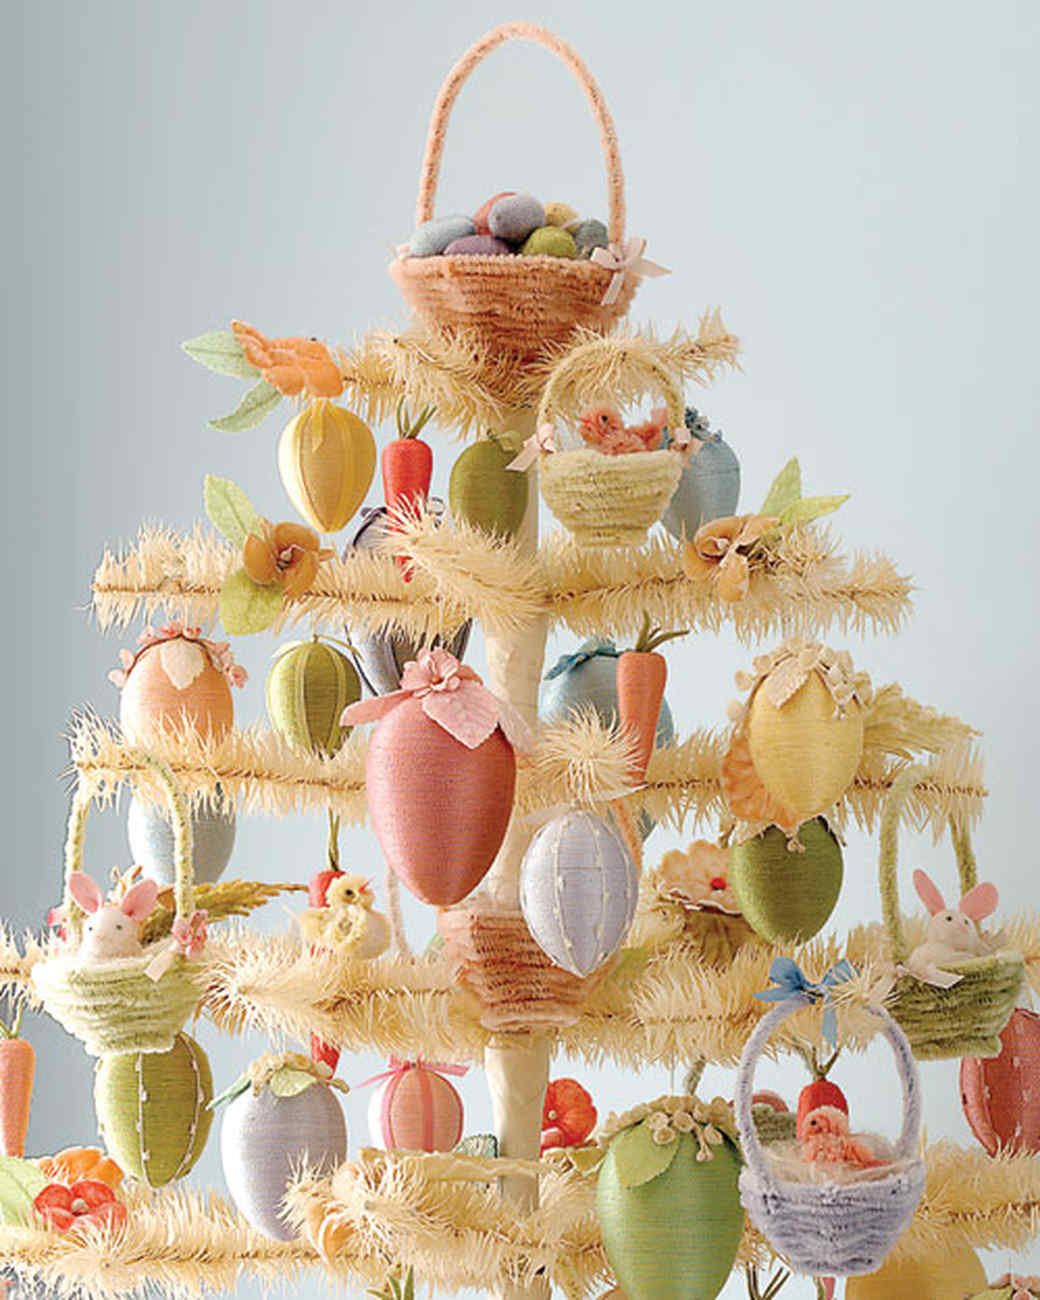 decorating for easter martha stewart - Easter Decorating Ideas